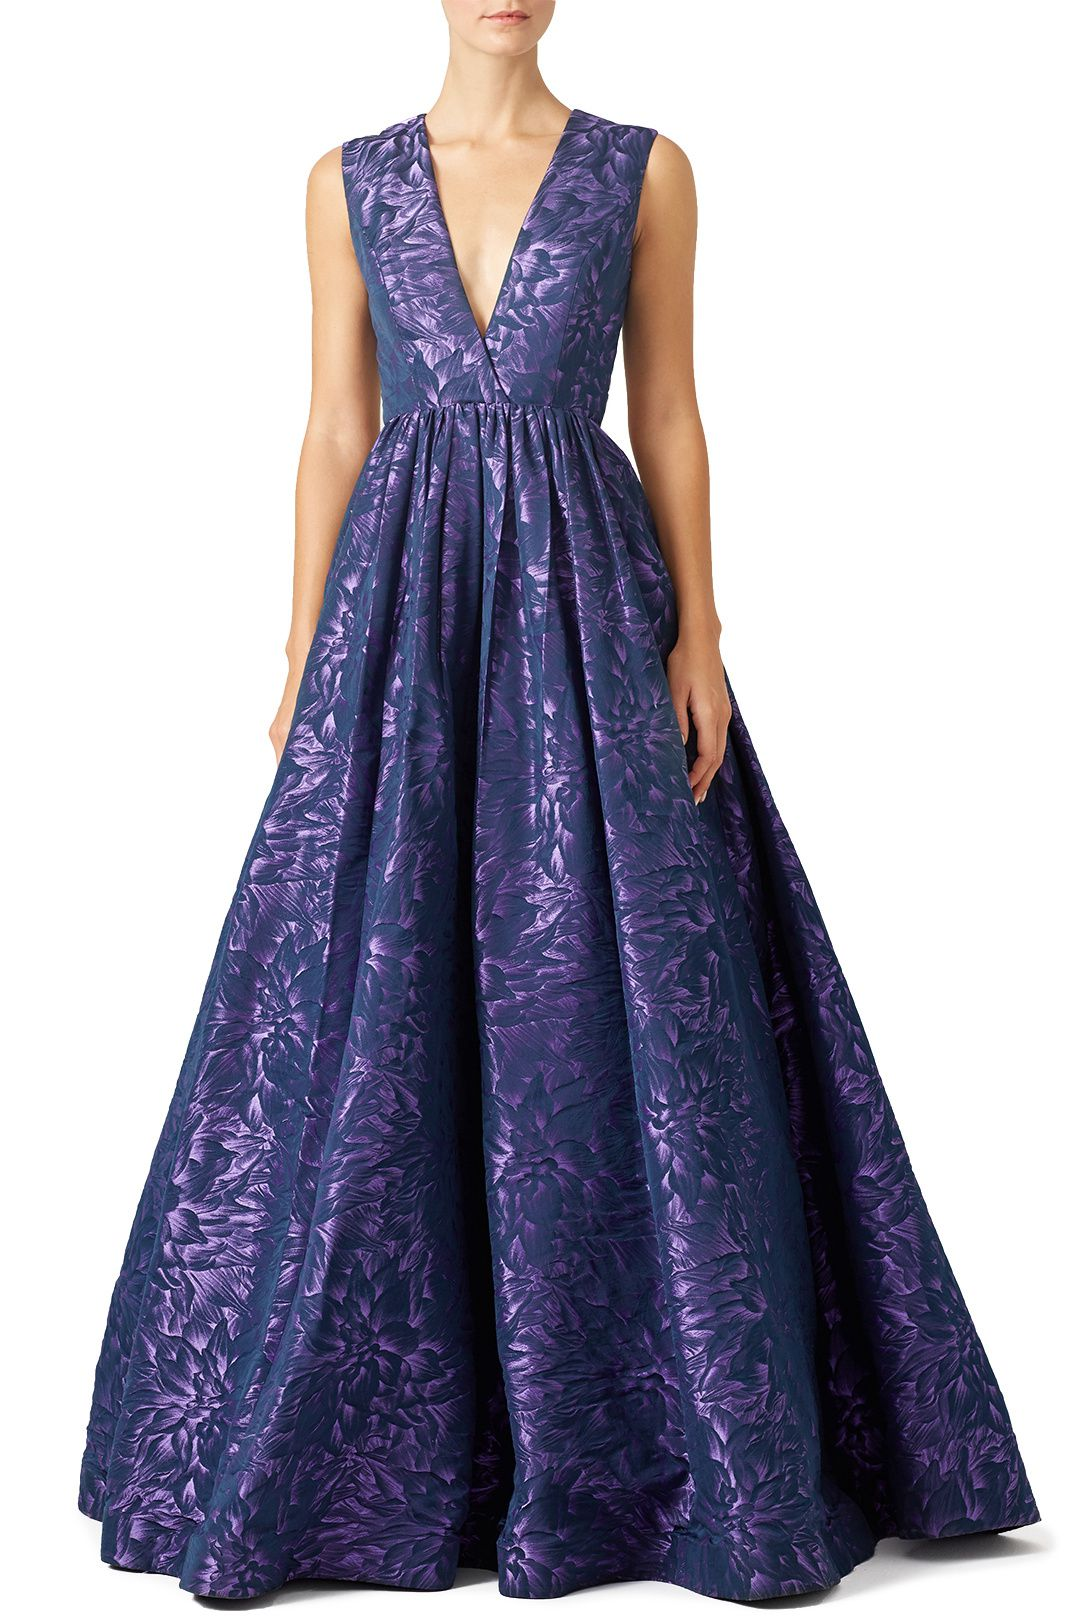 A model wearing a blue and purple formal gown